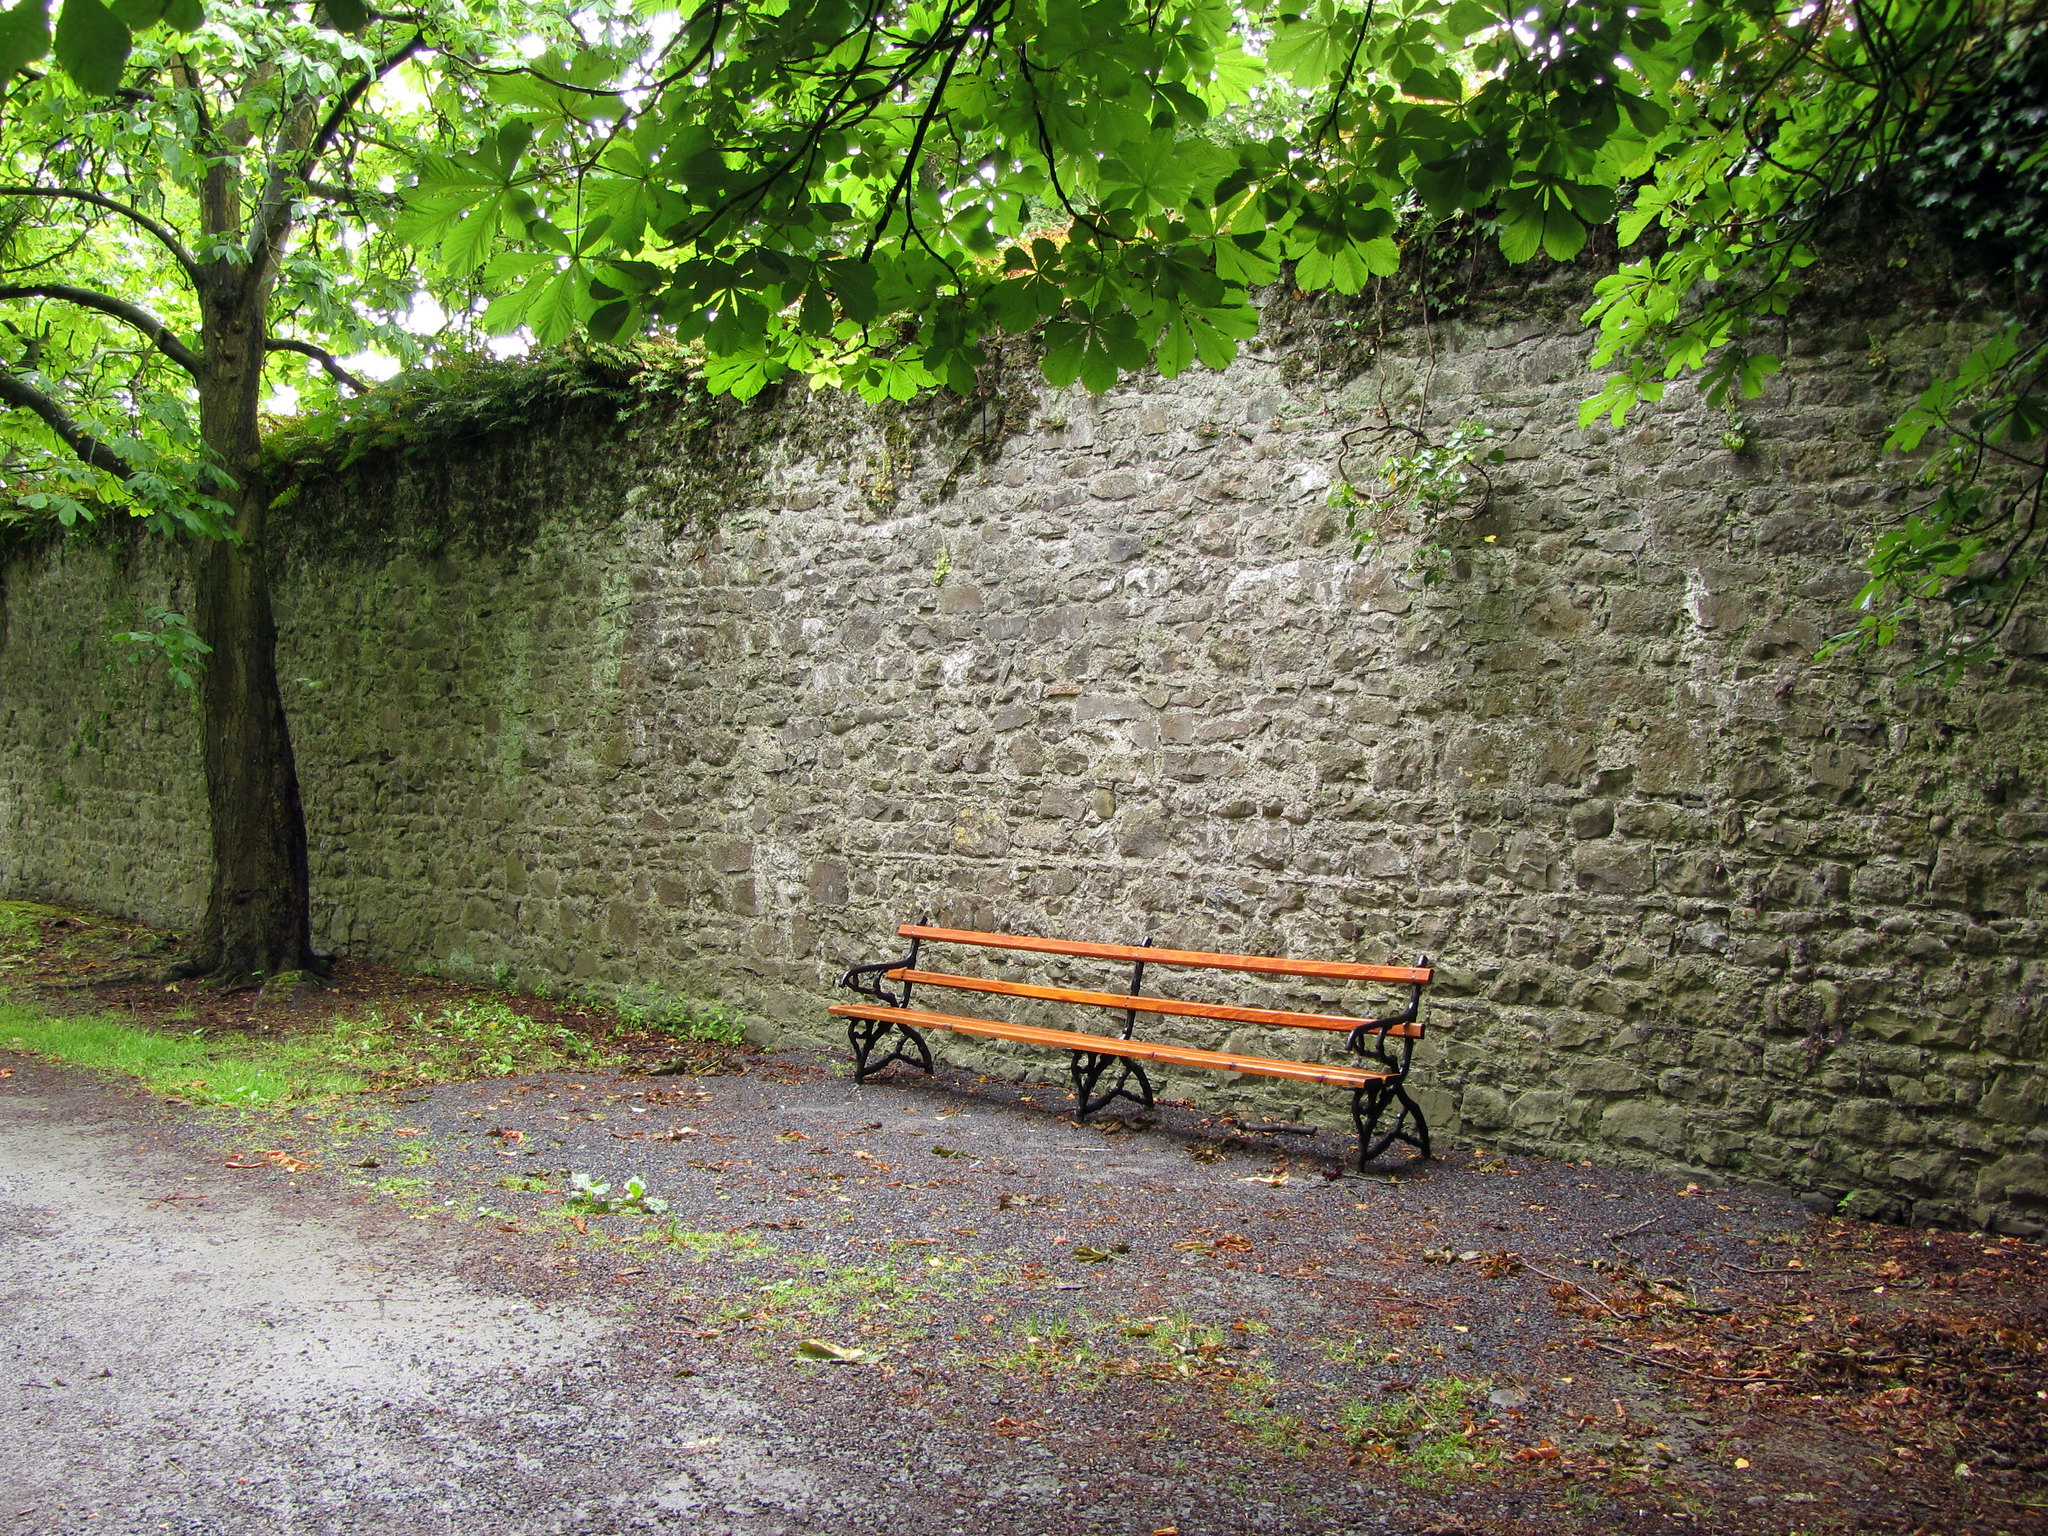 Free download high resolution image - free image free photo free stock image public domain picture -Bench against a brick wall; urban scenery